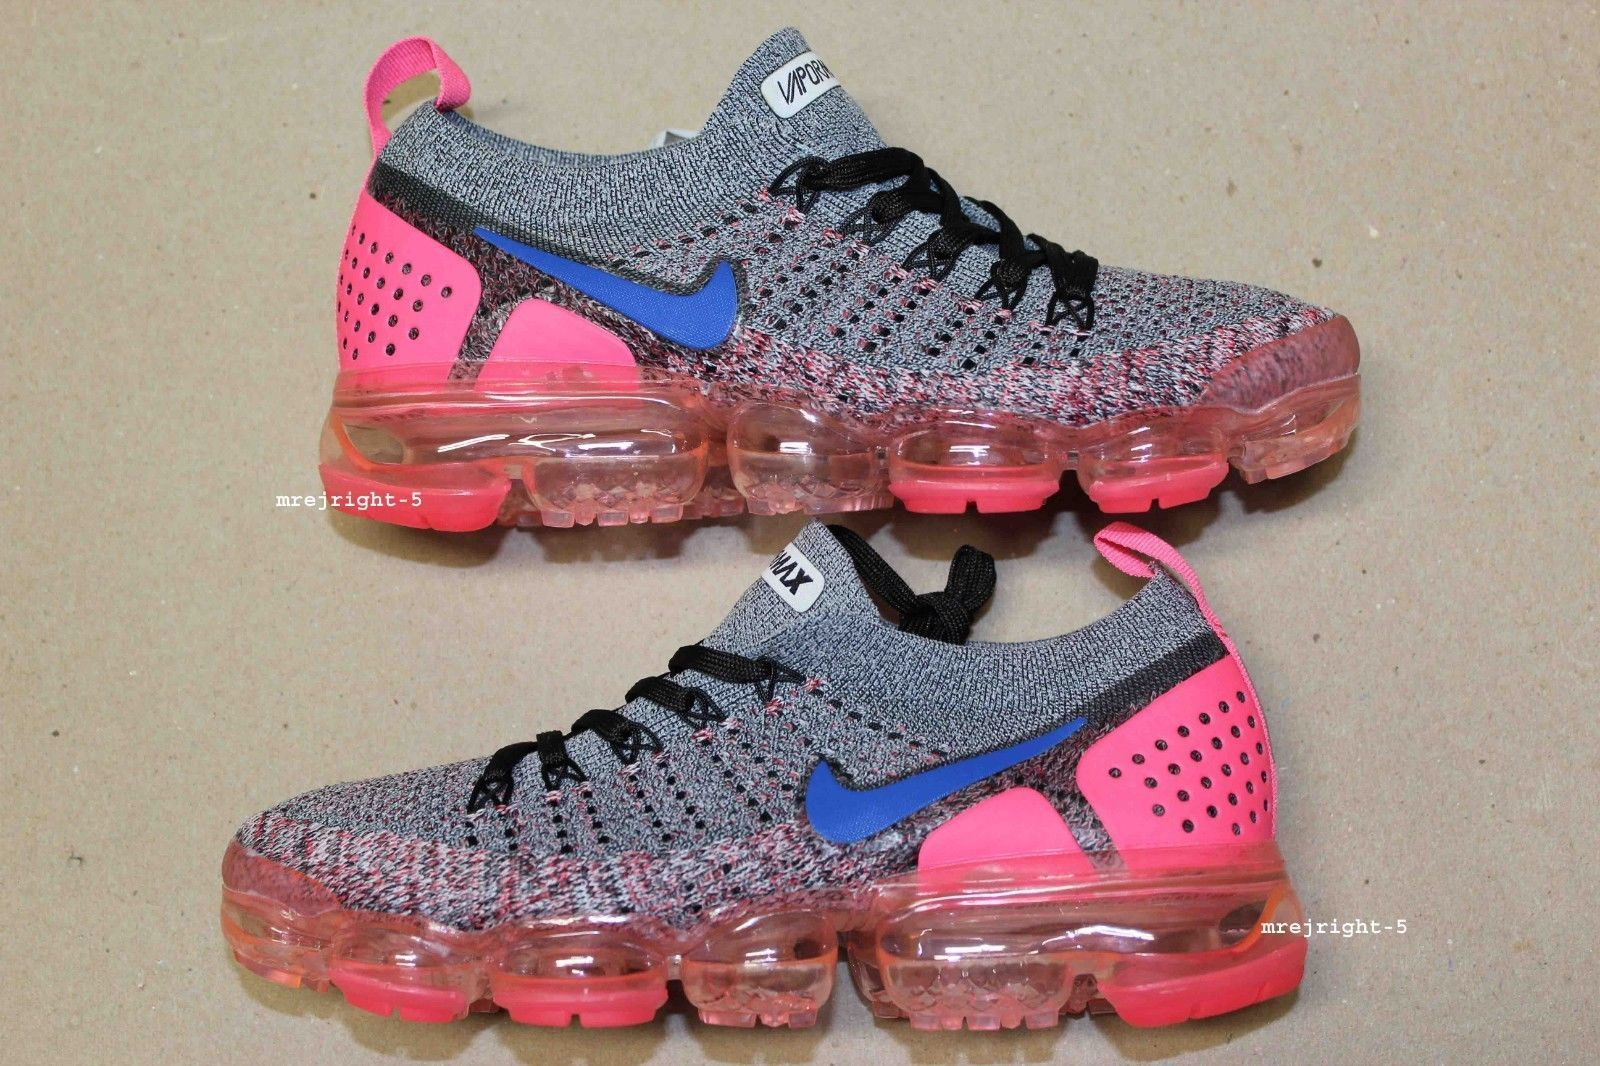 picked up another chance utterly stylish Women's Nike Air VaporMax Flyknit 2 Size 7 Pink Gray Blue ...